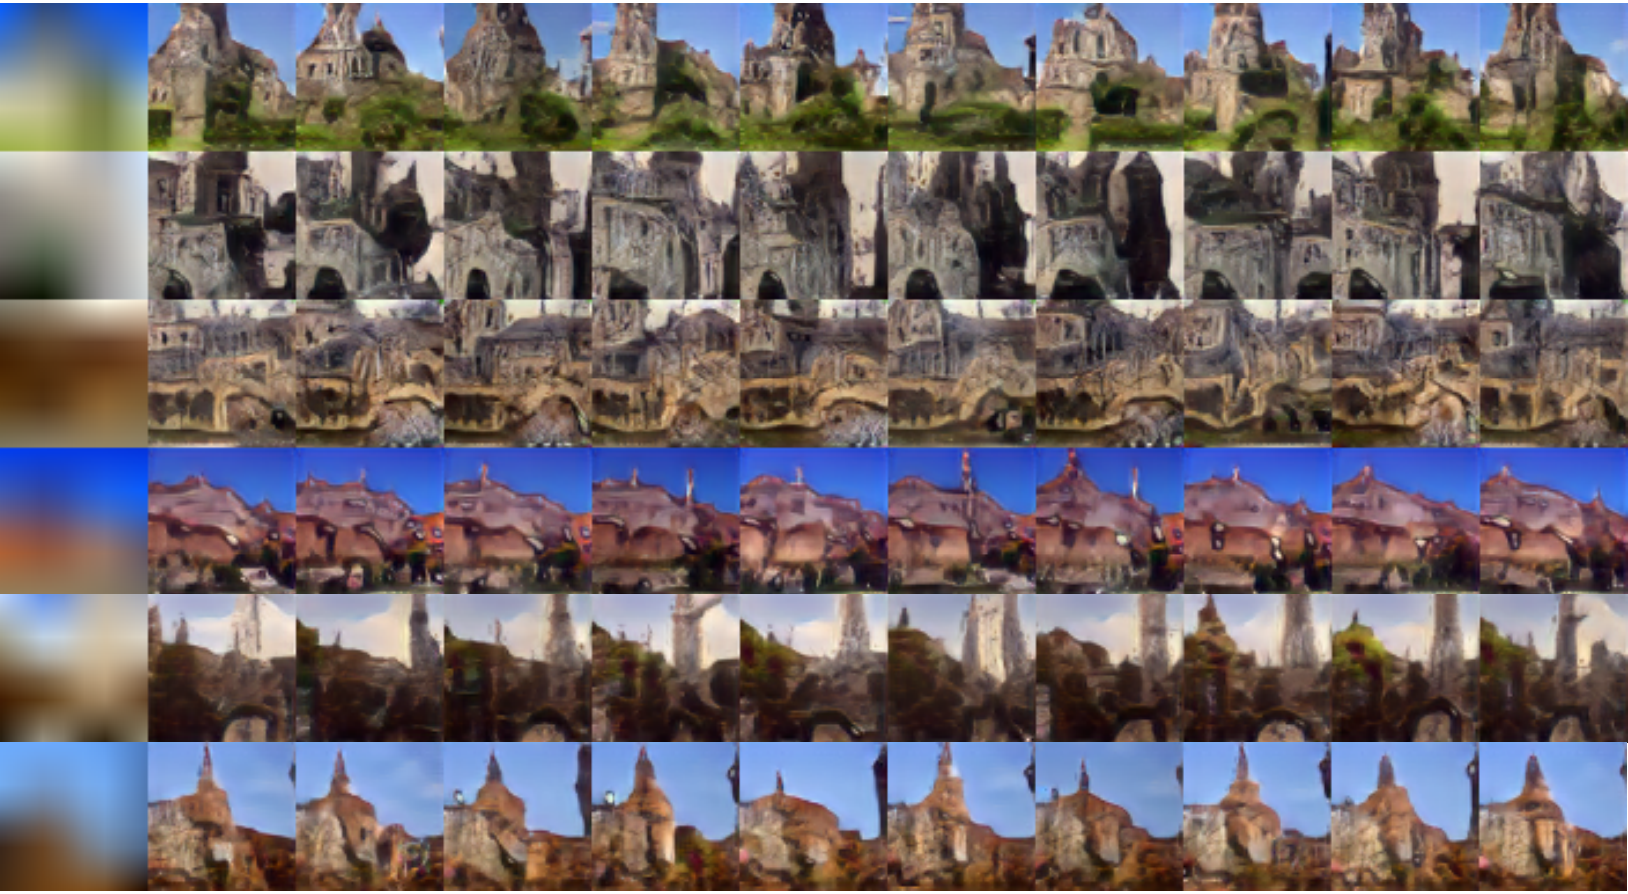 Facebook's AI robot can generate images that look real to humans 40% of the time